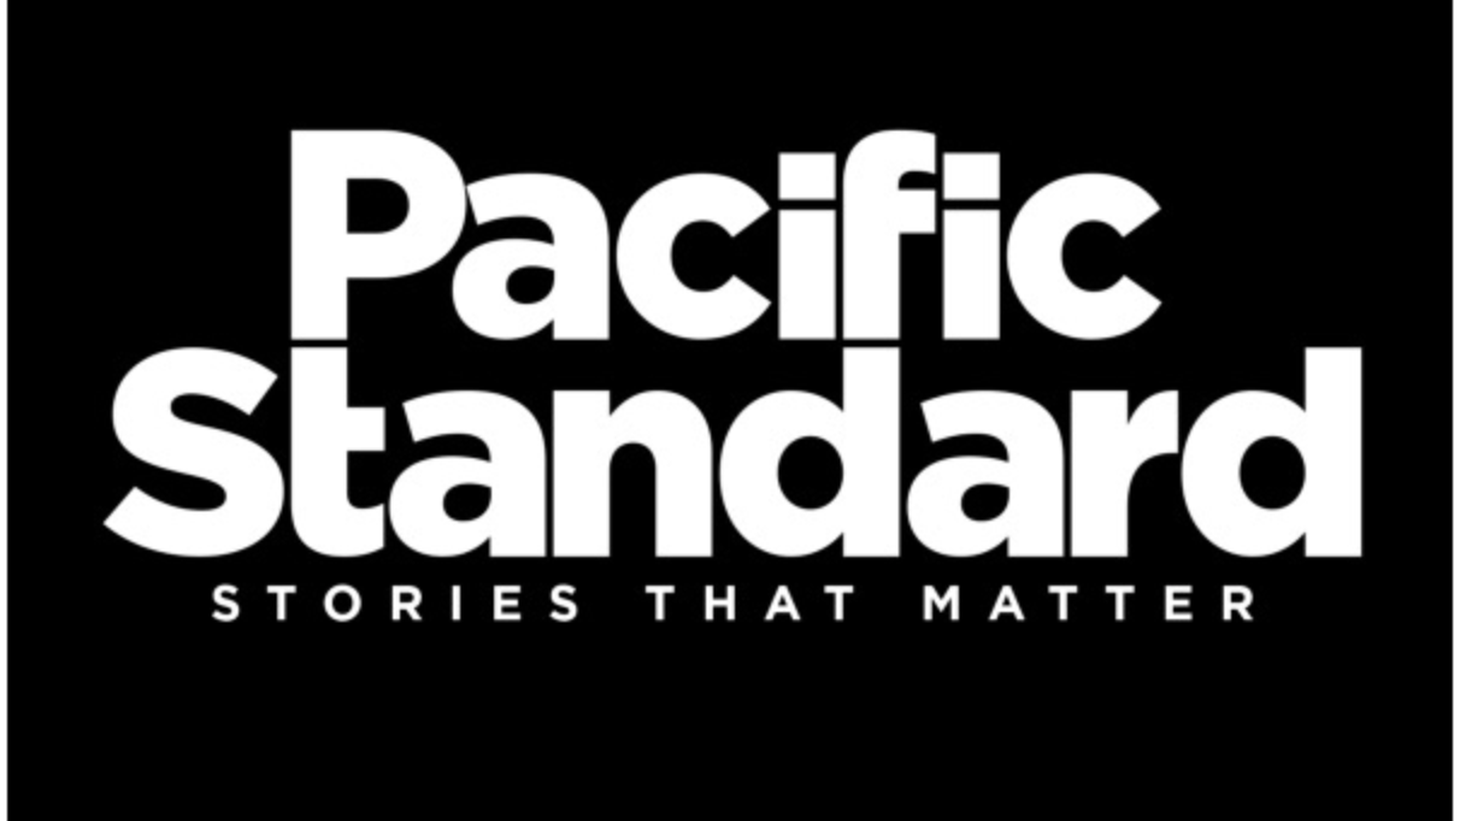 August 16 will be the last day that Pacific Standard magazine will operate.